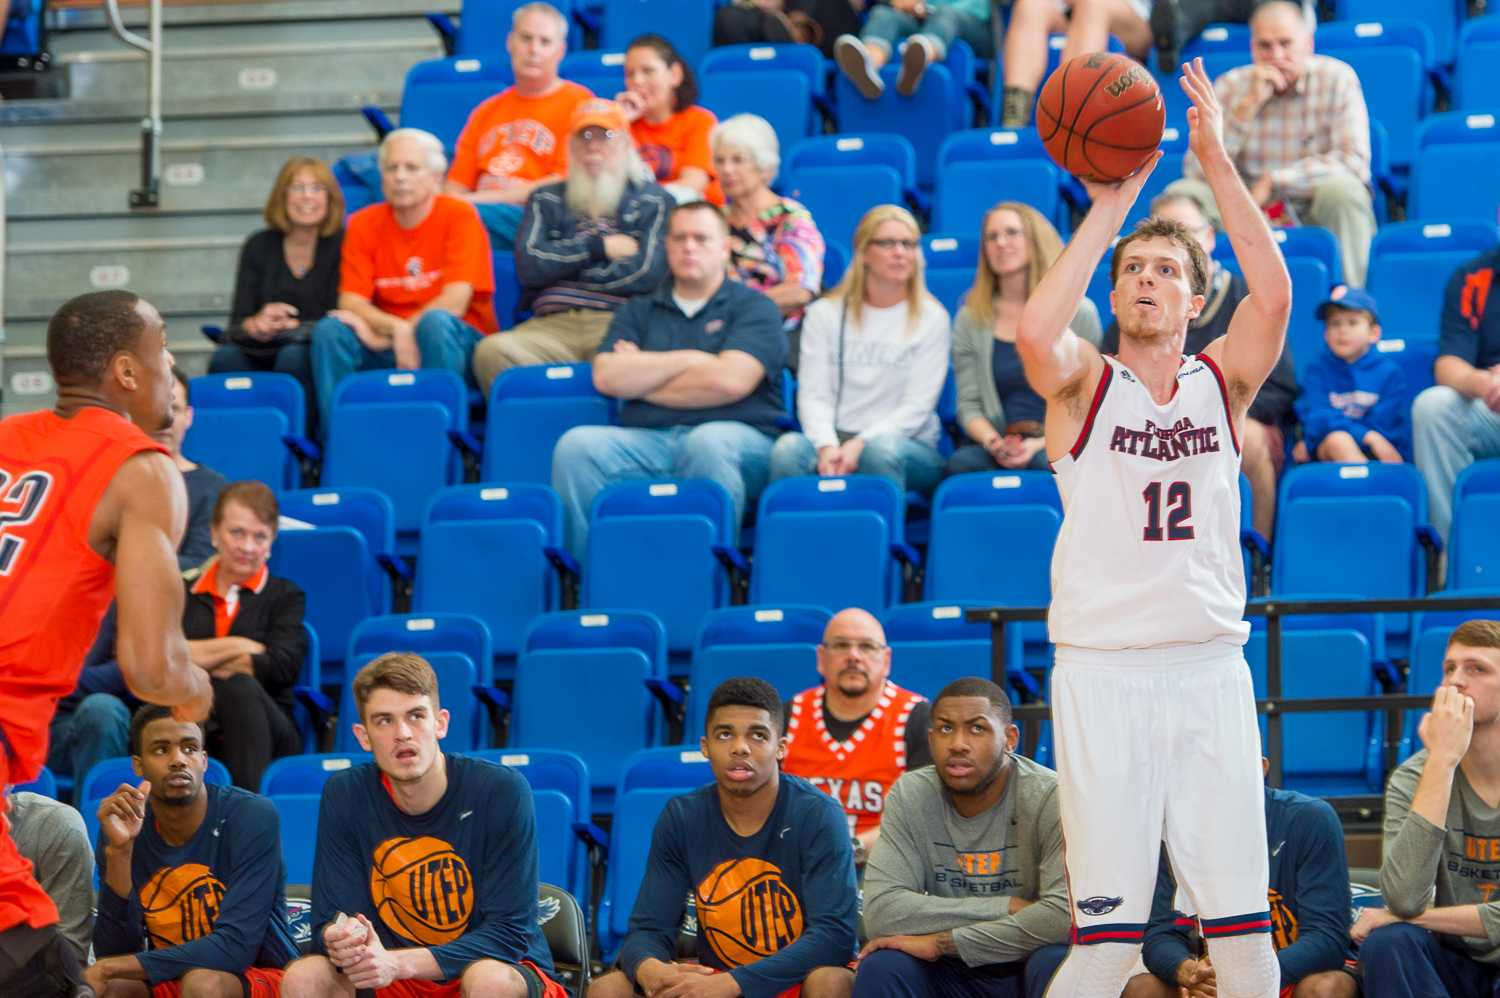 Jackson Trapp (12) of the FAU Owls attempts a three pointer in the first half of play against UTEP.  Trapp shot 1-for-4 from the 3-point line and scored six points on the night.